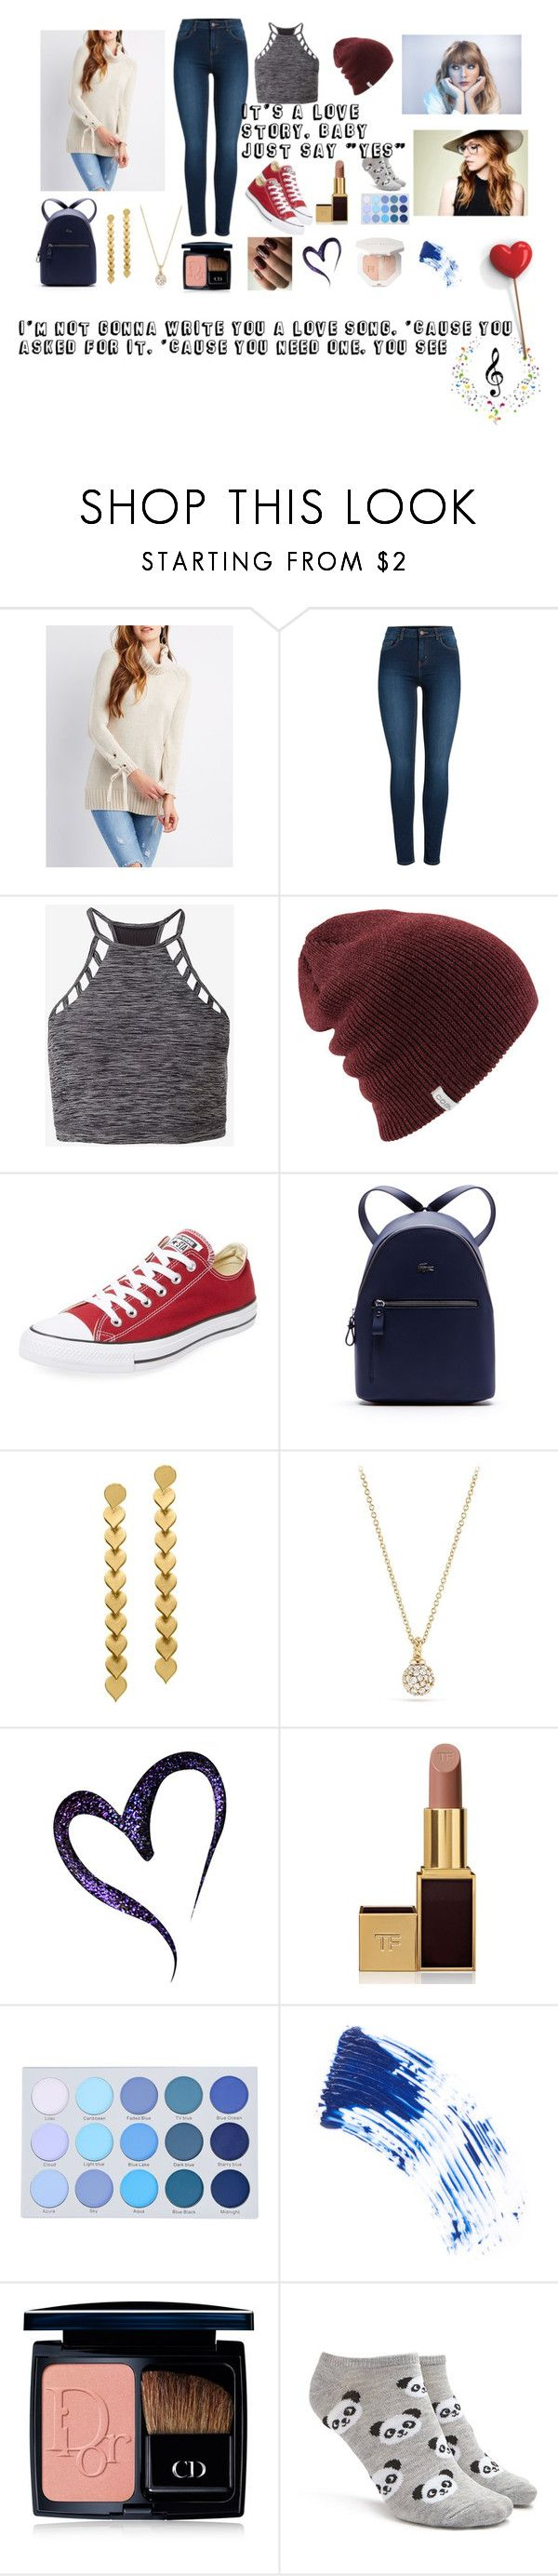 """""""Love Song: Taylor Swift, Ingrid Michaelson mashup"""" by lcampbell12 on Polyvore featuring Charlotte Russe, Pieces, Express, Converse, Lacoste, David Yurman, Tom Ford, NARS Cosmetics, Christian Dior and Forever 21"""